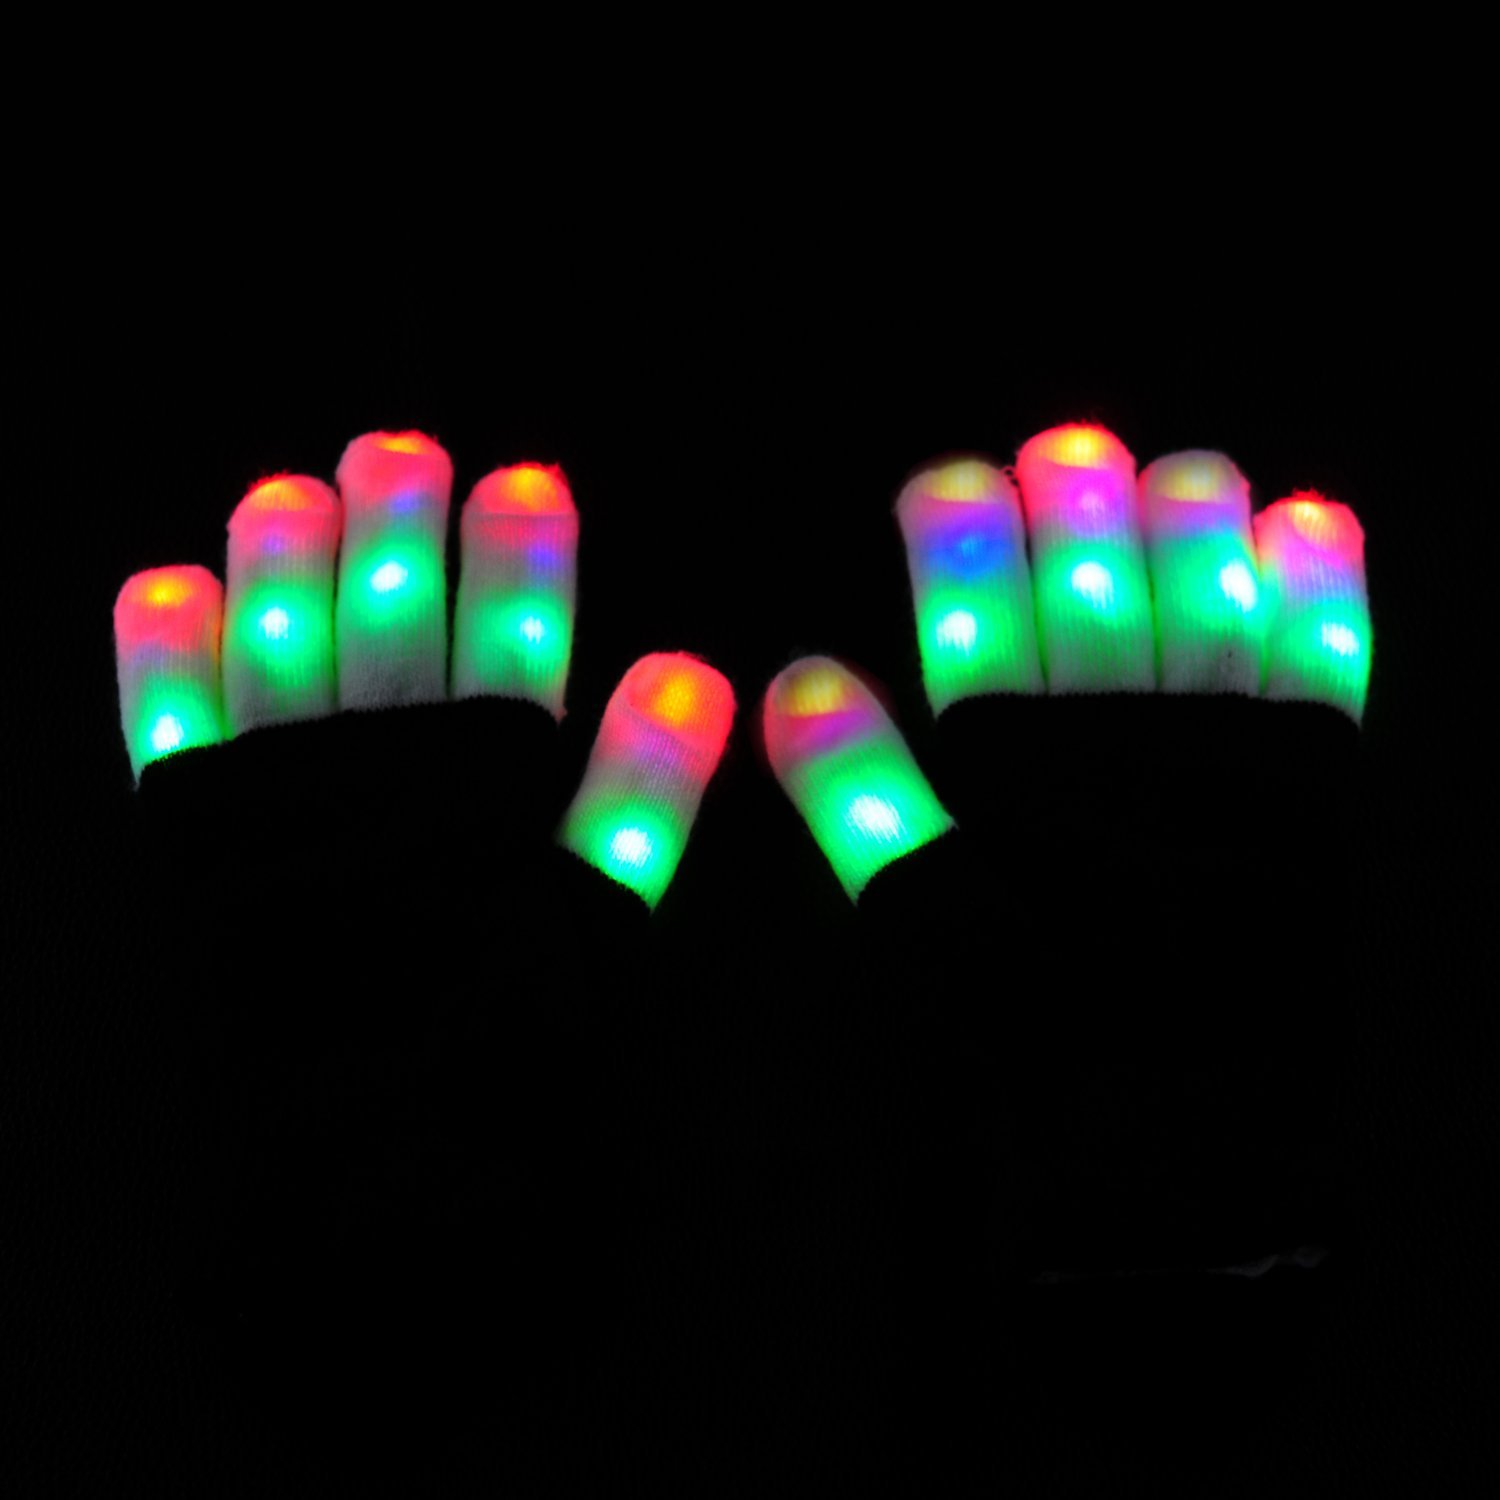 LED Raver Gloves, Crayon Blacked Out, 6 modes, RGB Multicolor